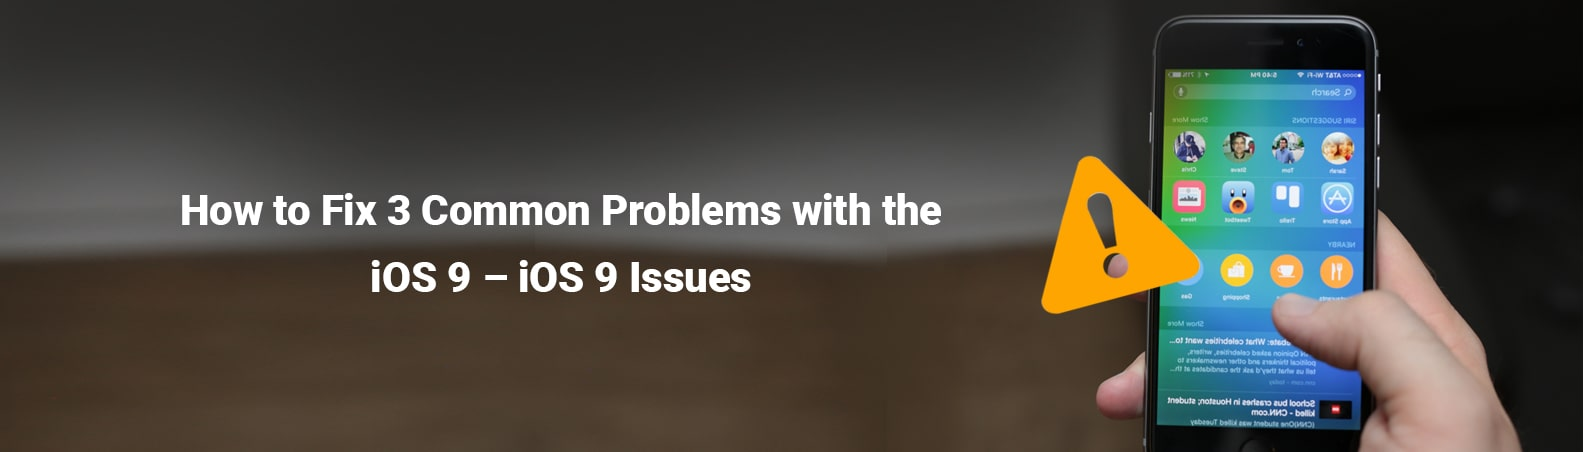 How to Fix 3 Common Problems with the iOS 9 – iOS 9 Issues